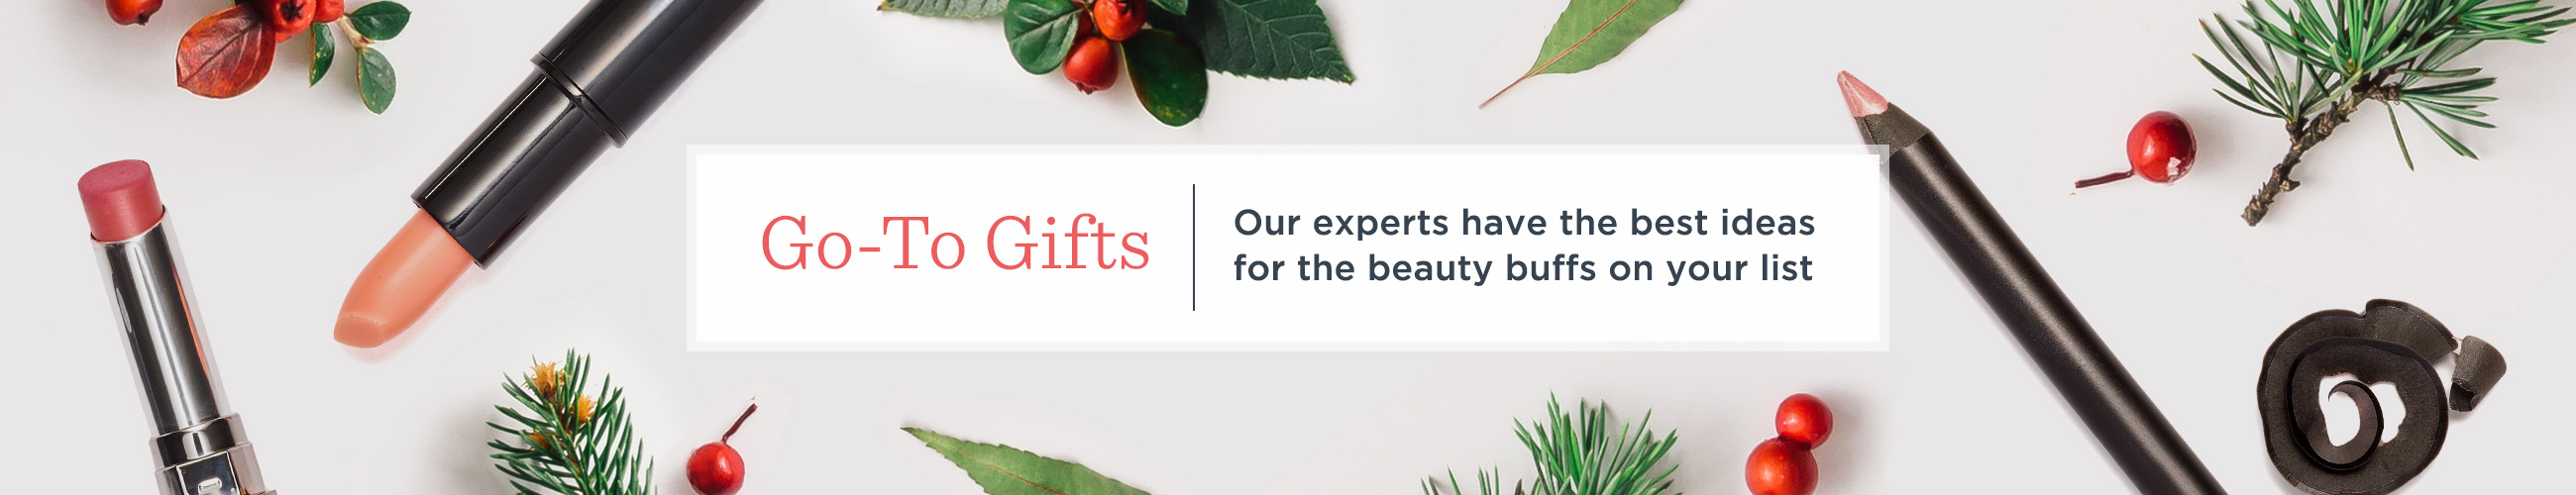 Go-To Gifts  Our experts have the best ideas for the beauty buffs on your list